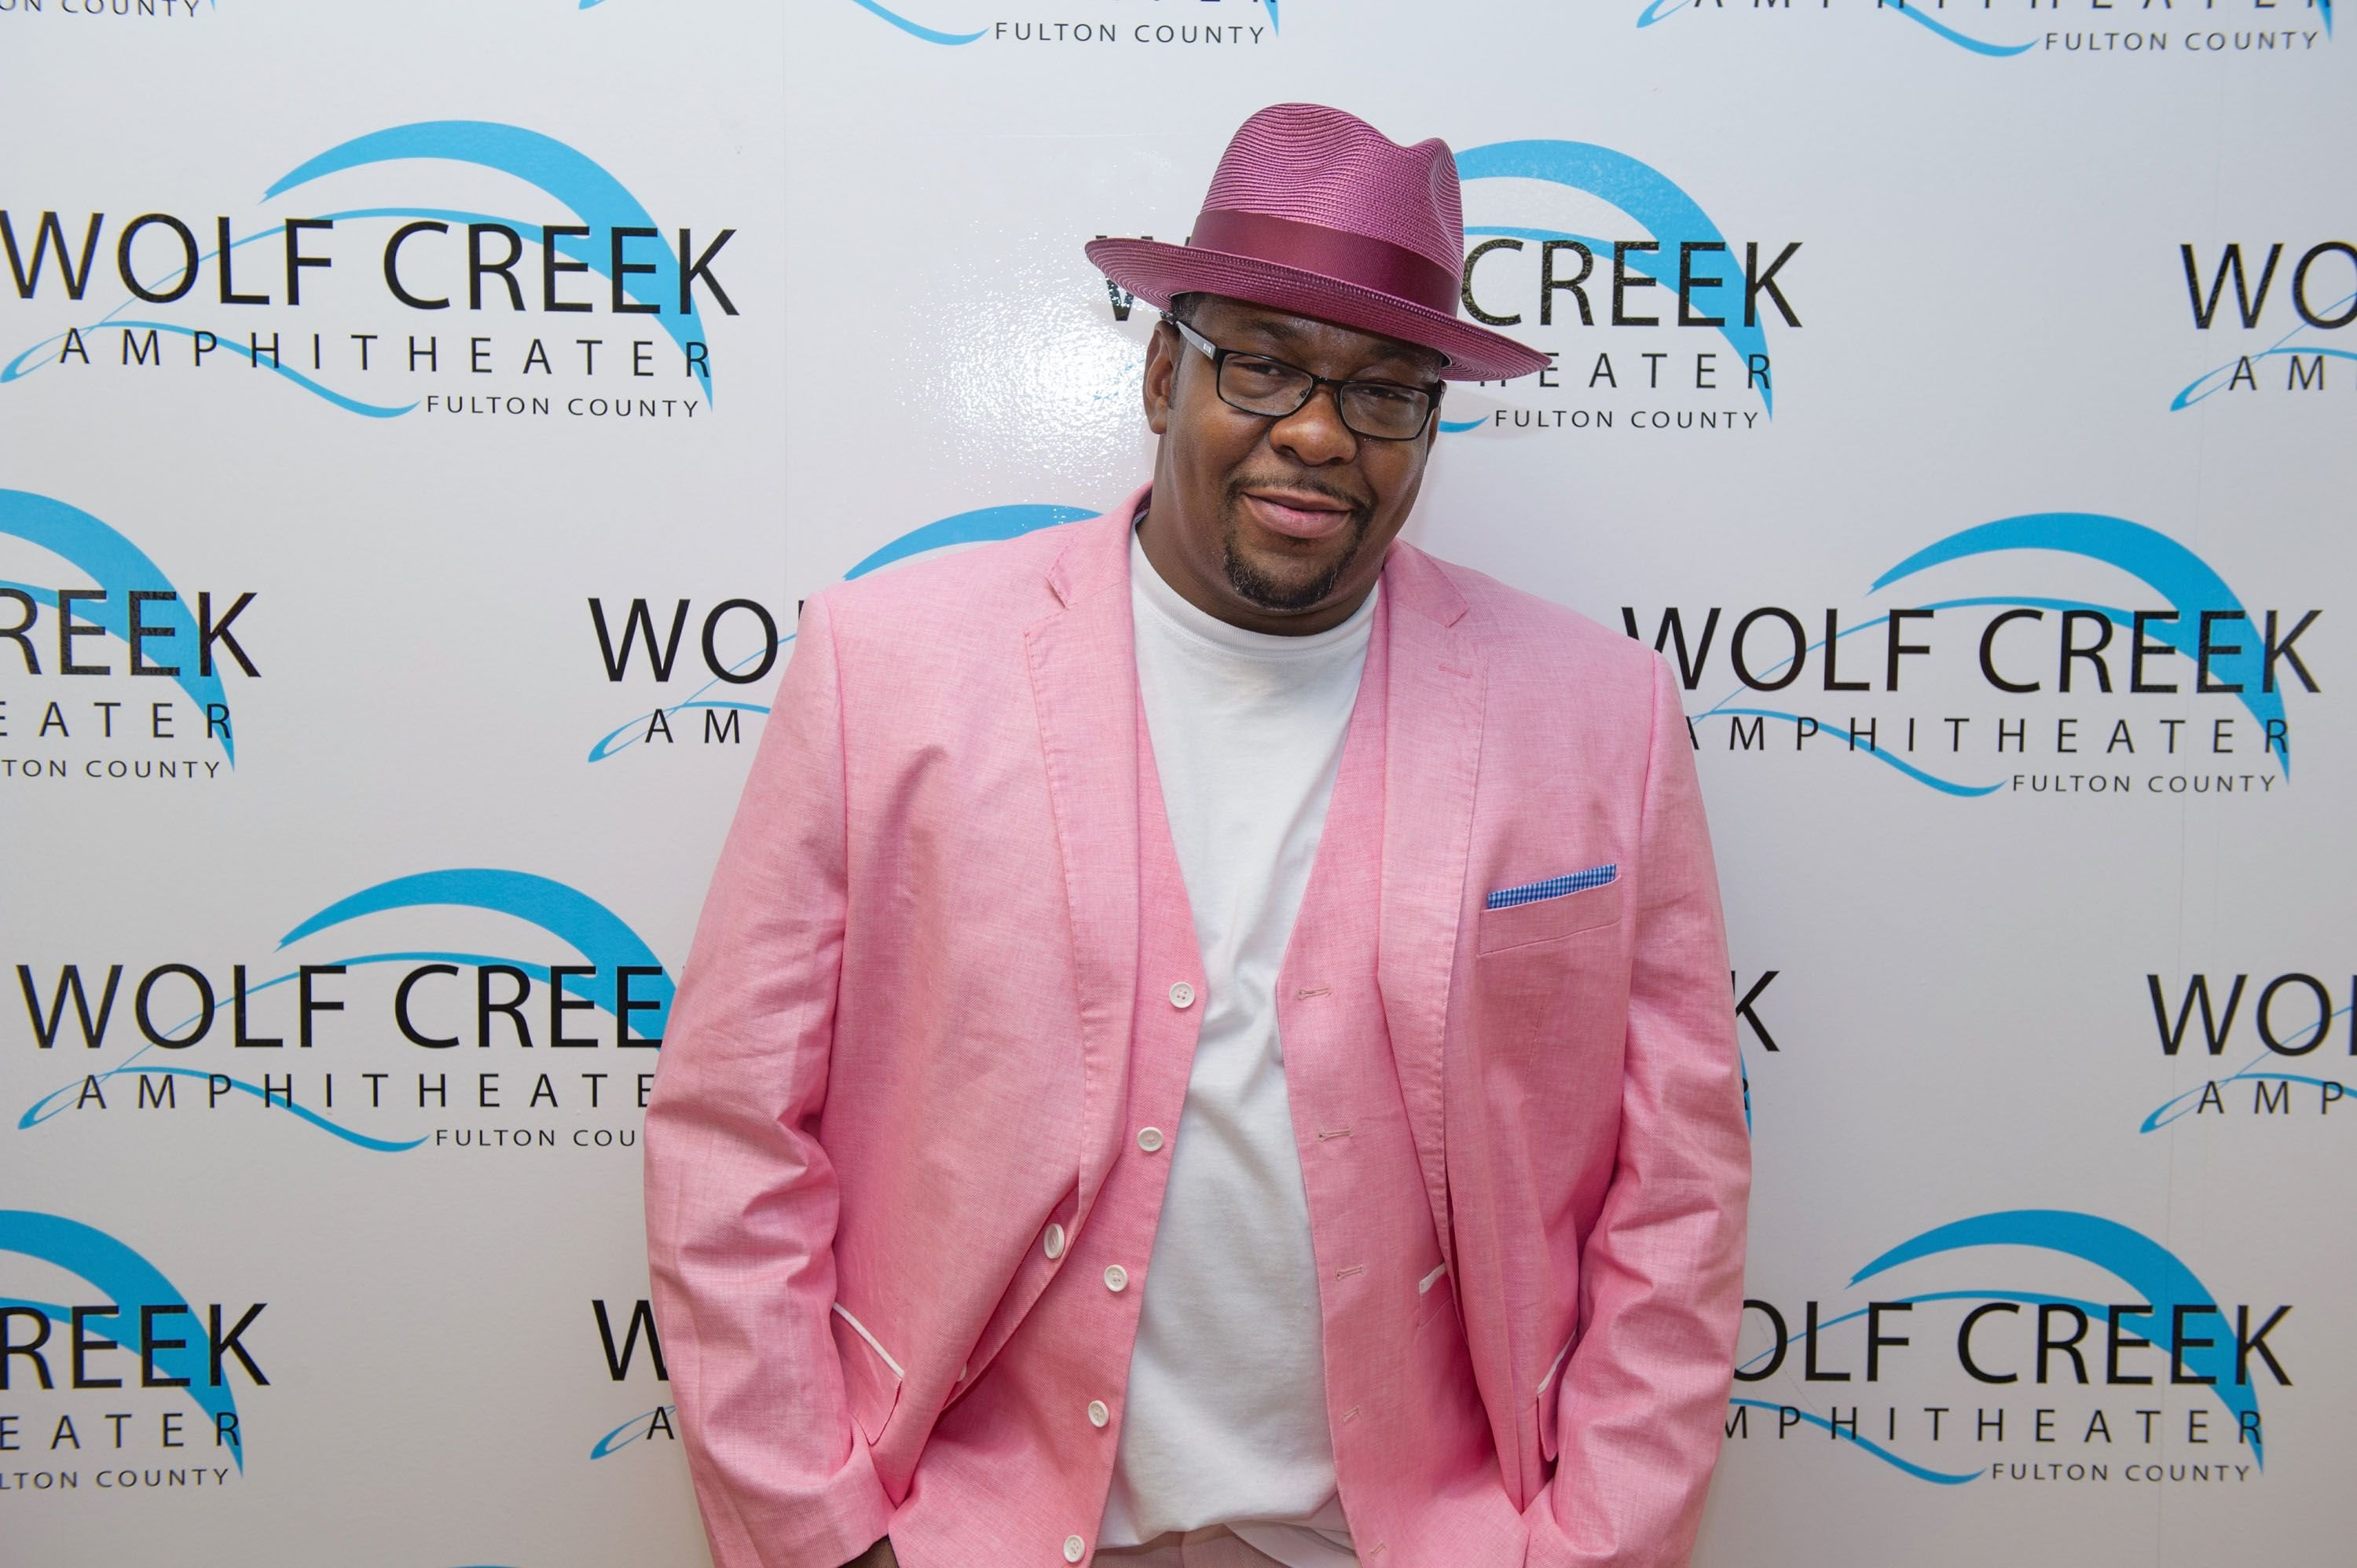 Bobby Brown at the Affordable Old School Concert Series featuring Bobby Brown, Mint Condition, Juvenile, 8 Ball & MLG, Tweet And J.J. Williamson at Wolf Creek Amphitheater on July 4, 2015 | Photo: Getty Images